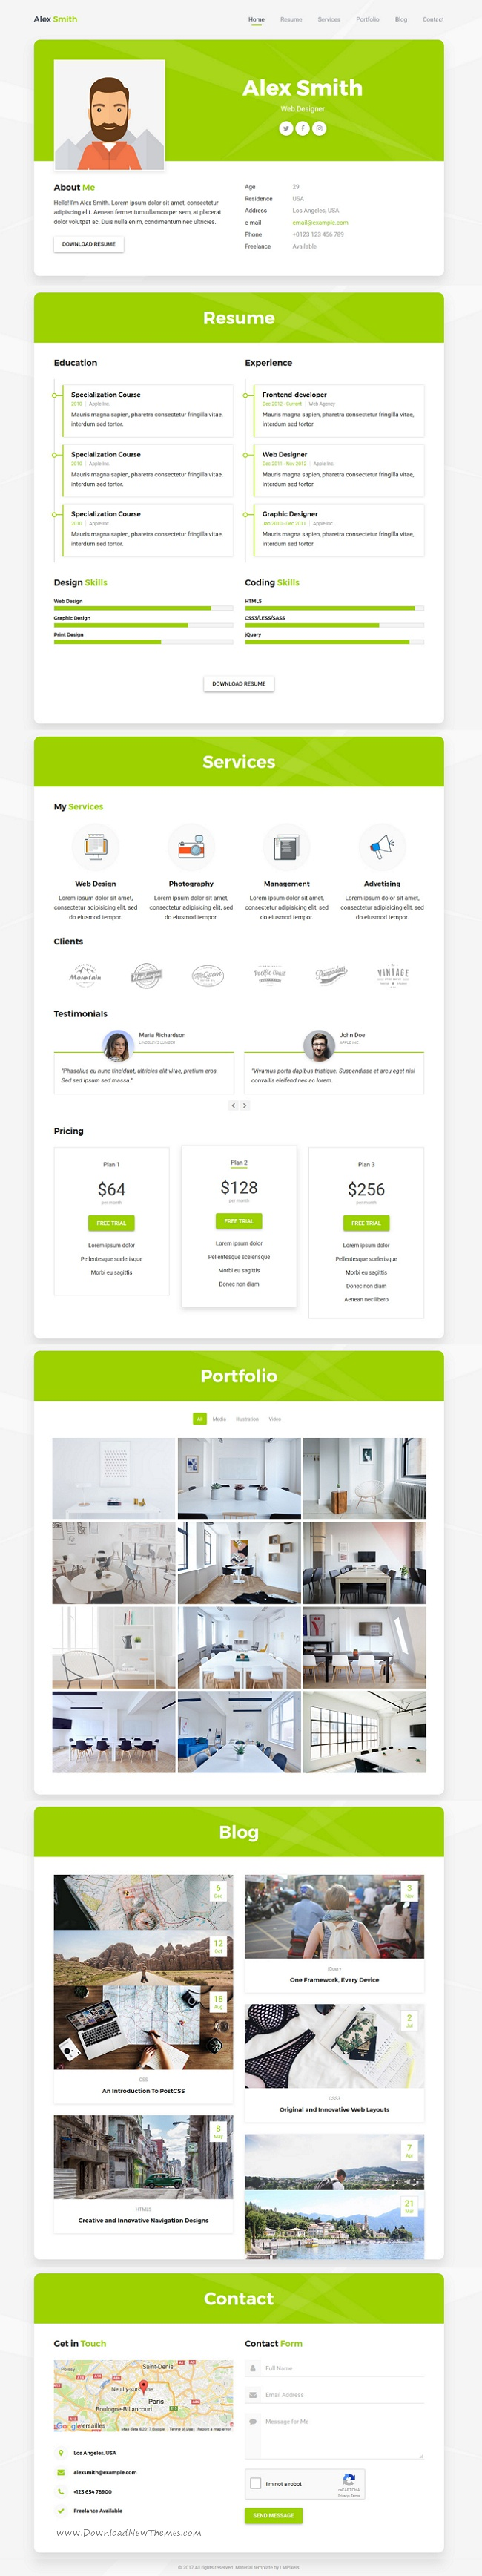 ProCard is clean and modern design #HTML template for professional #resume, #CV, vCard and portfolio showcase website download now..